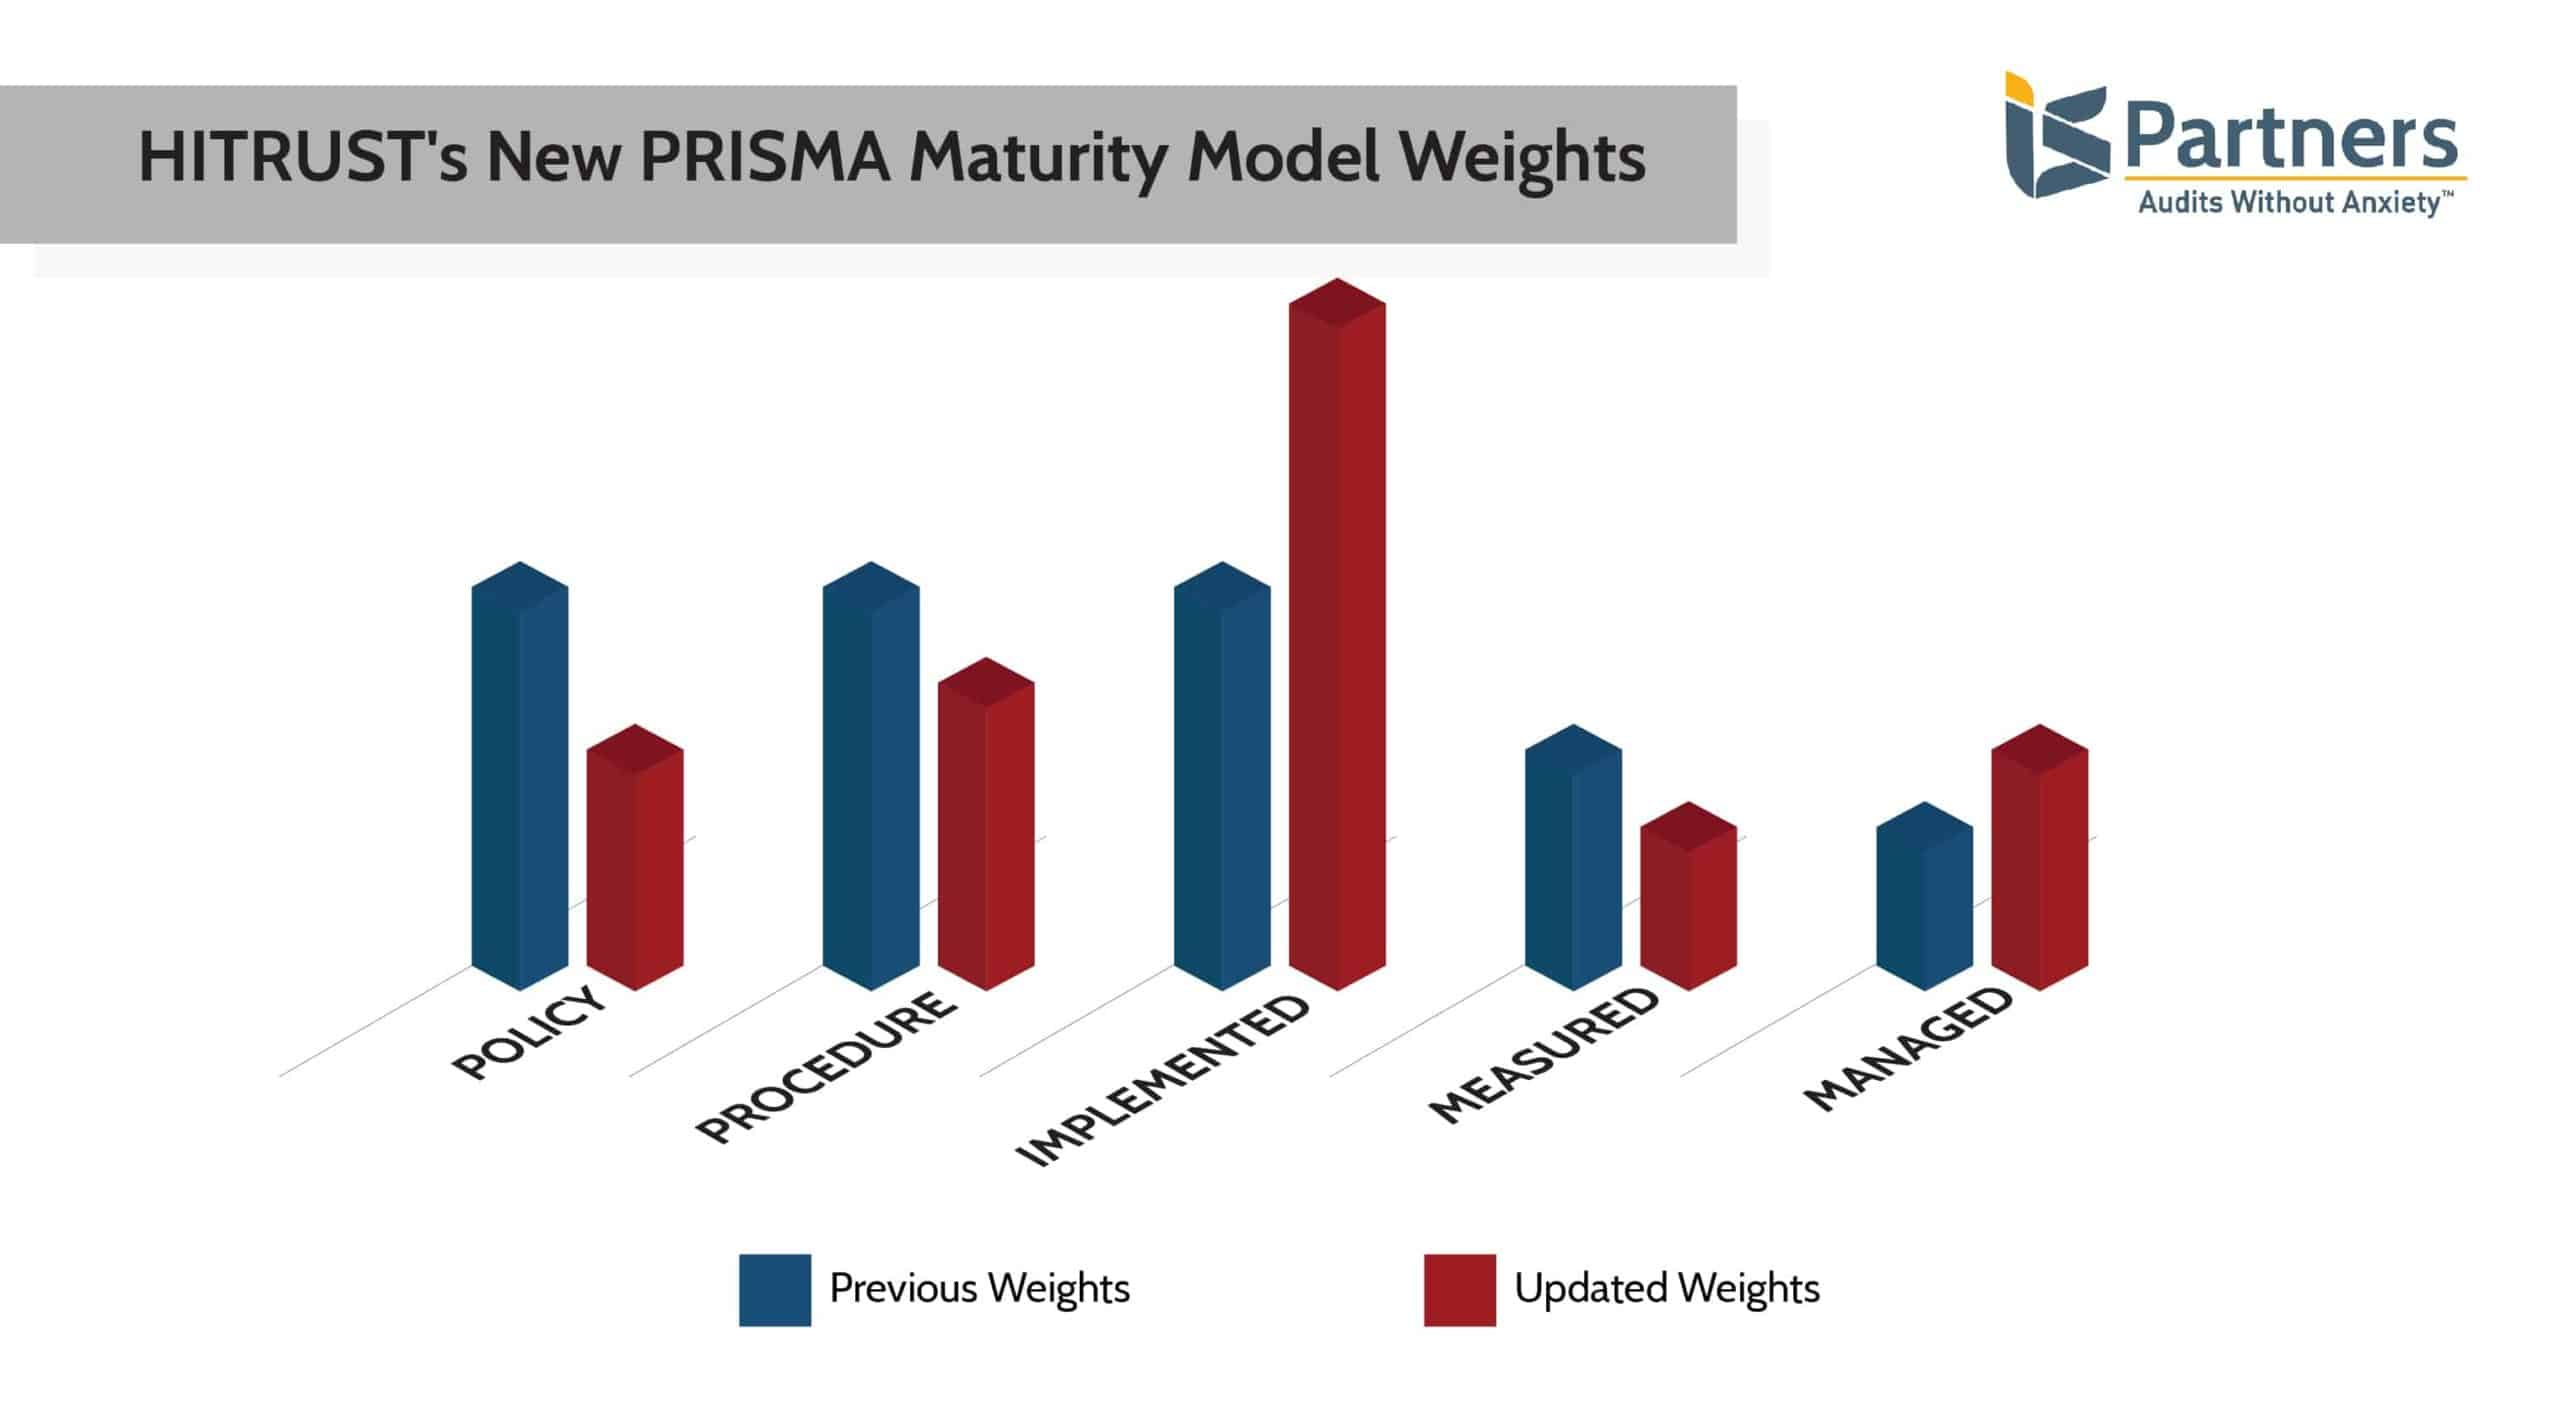 bar graph showing the new HITRUST PRISMA Maturity Model Weights